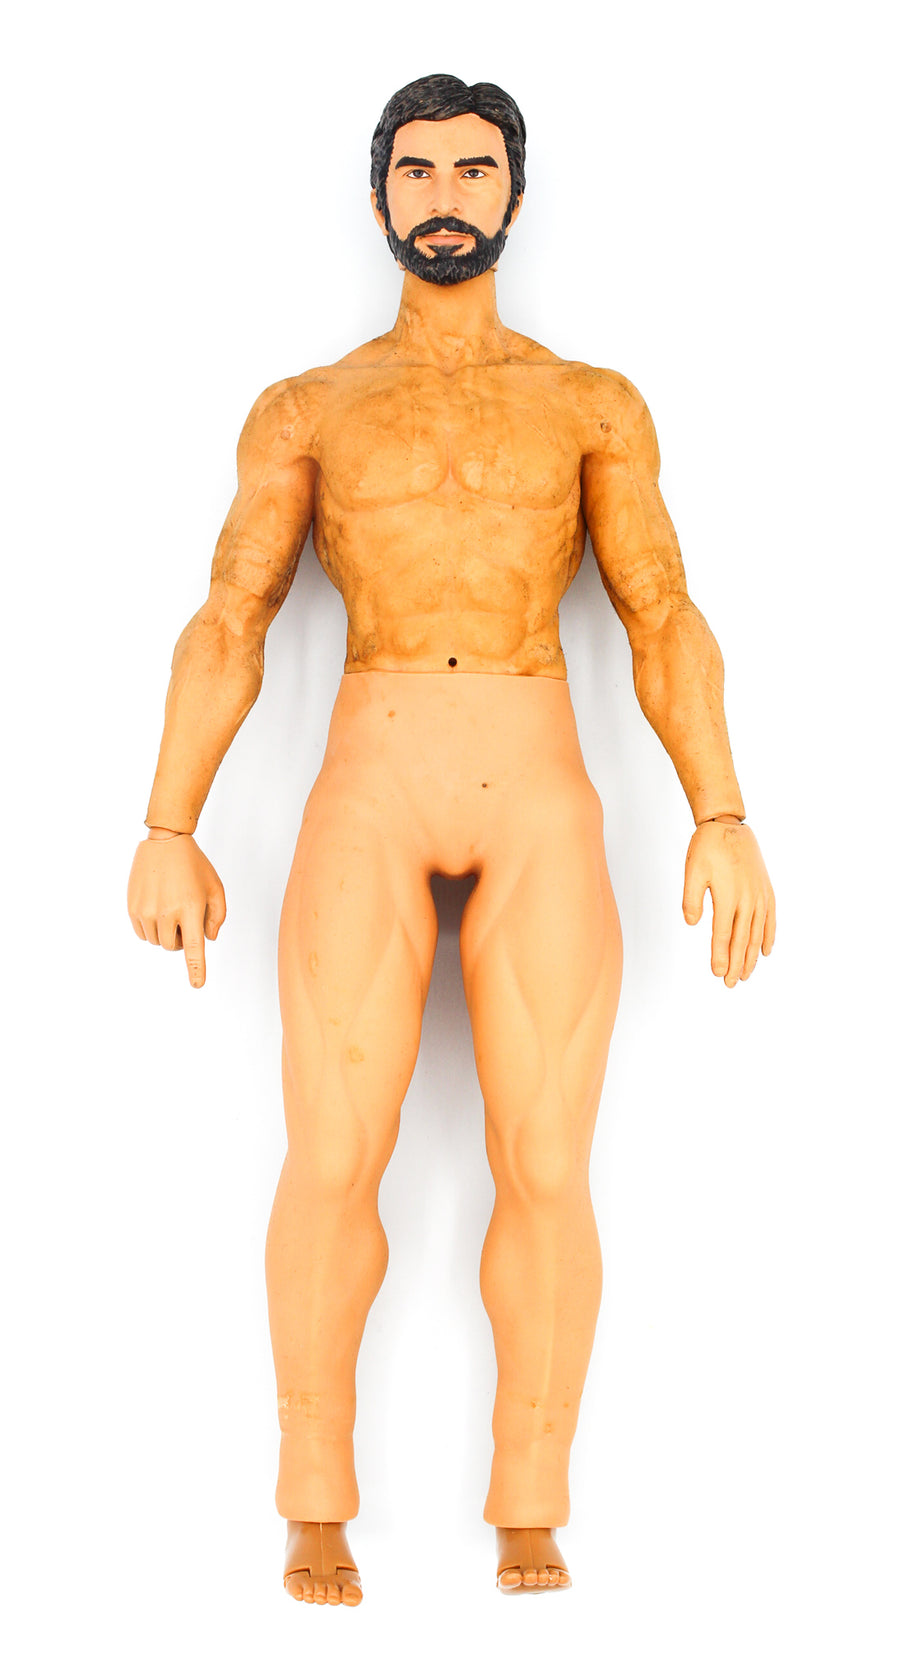 Private Military Contractor - Male Base Muscle Body w/Head Sculpt